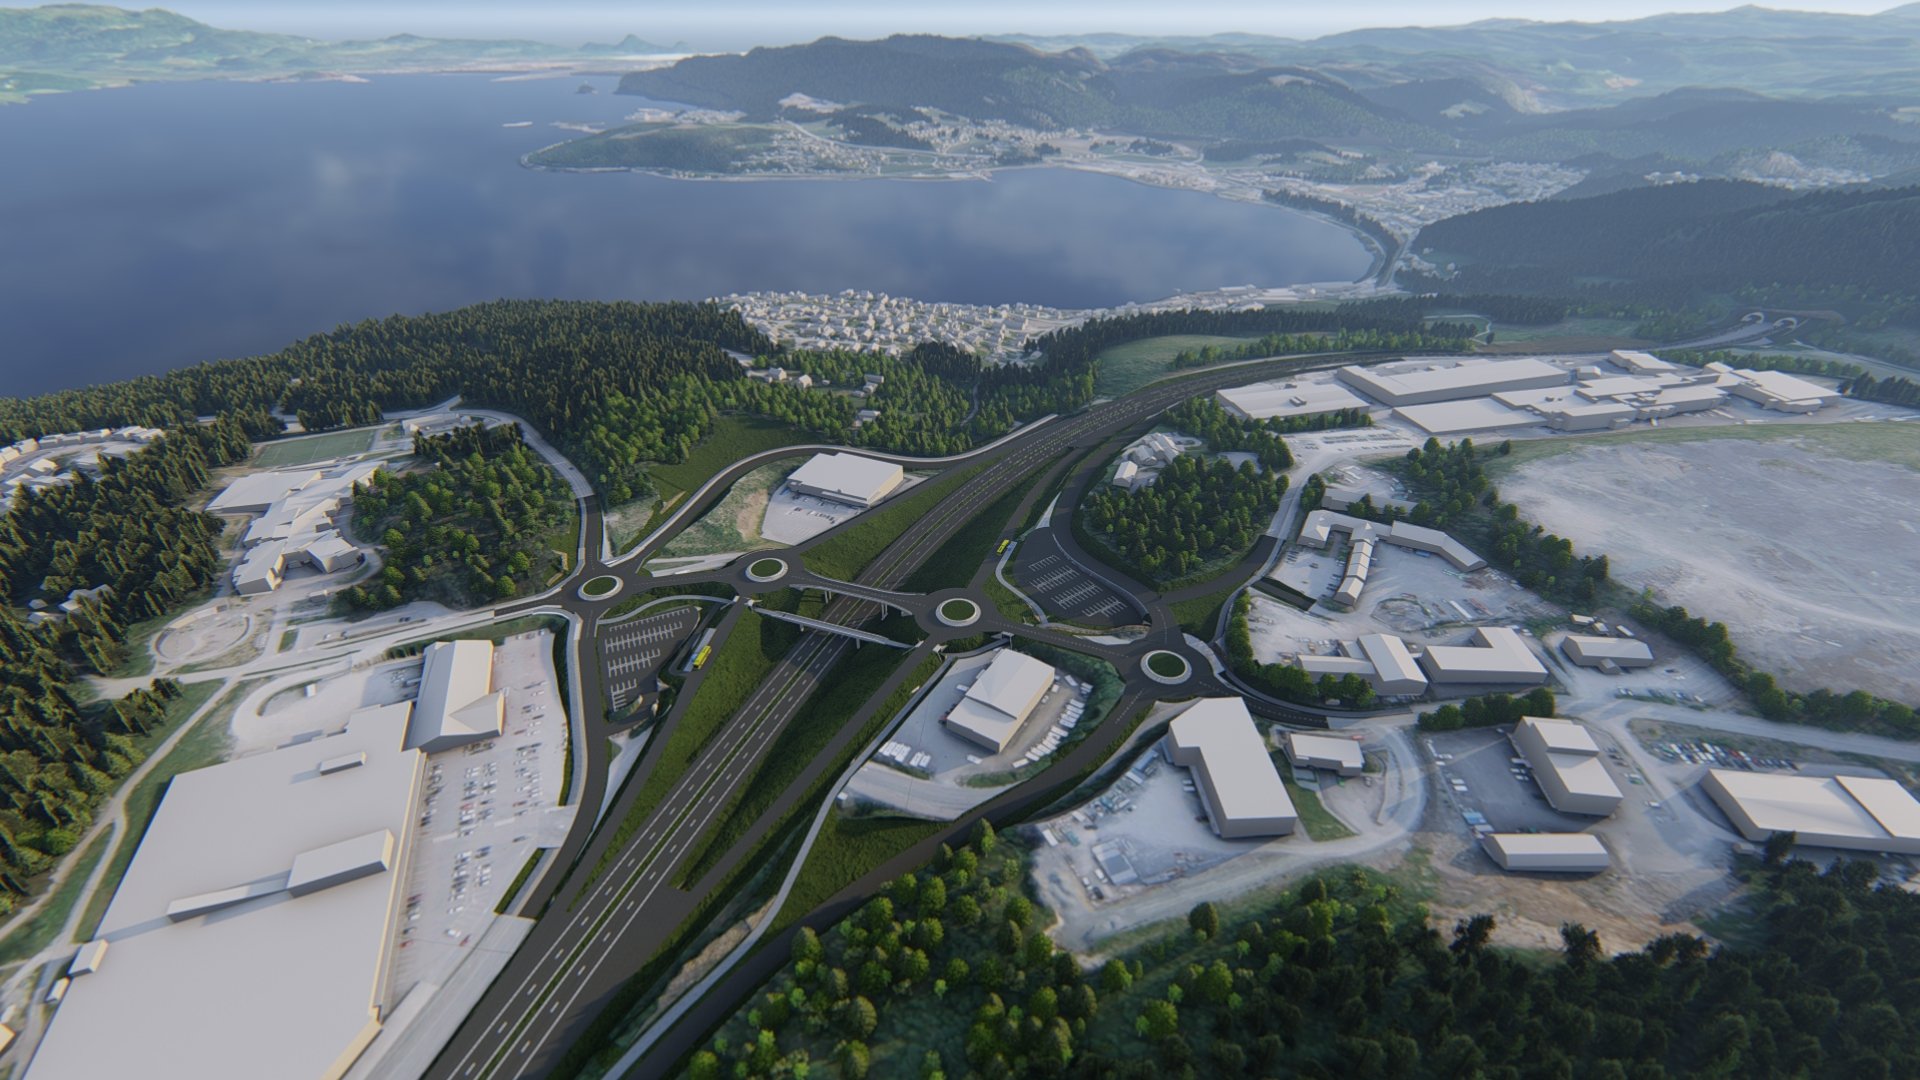 New E6 highway by Sveberg outside of Trondheim will look after construction is completed.